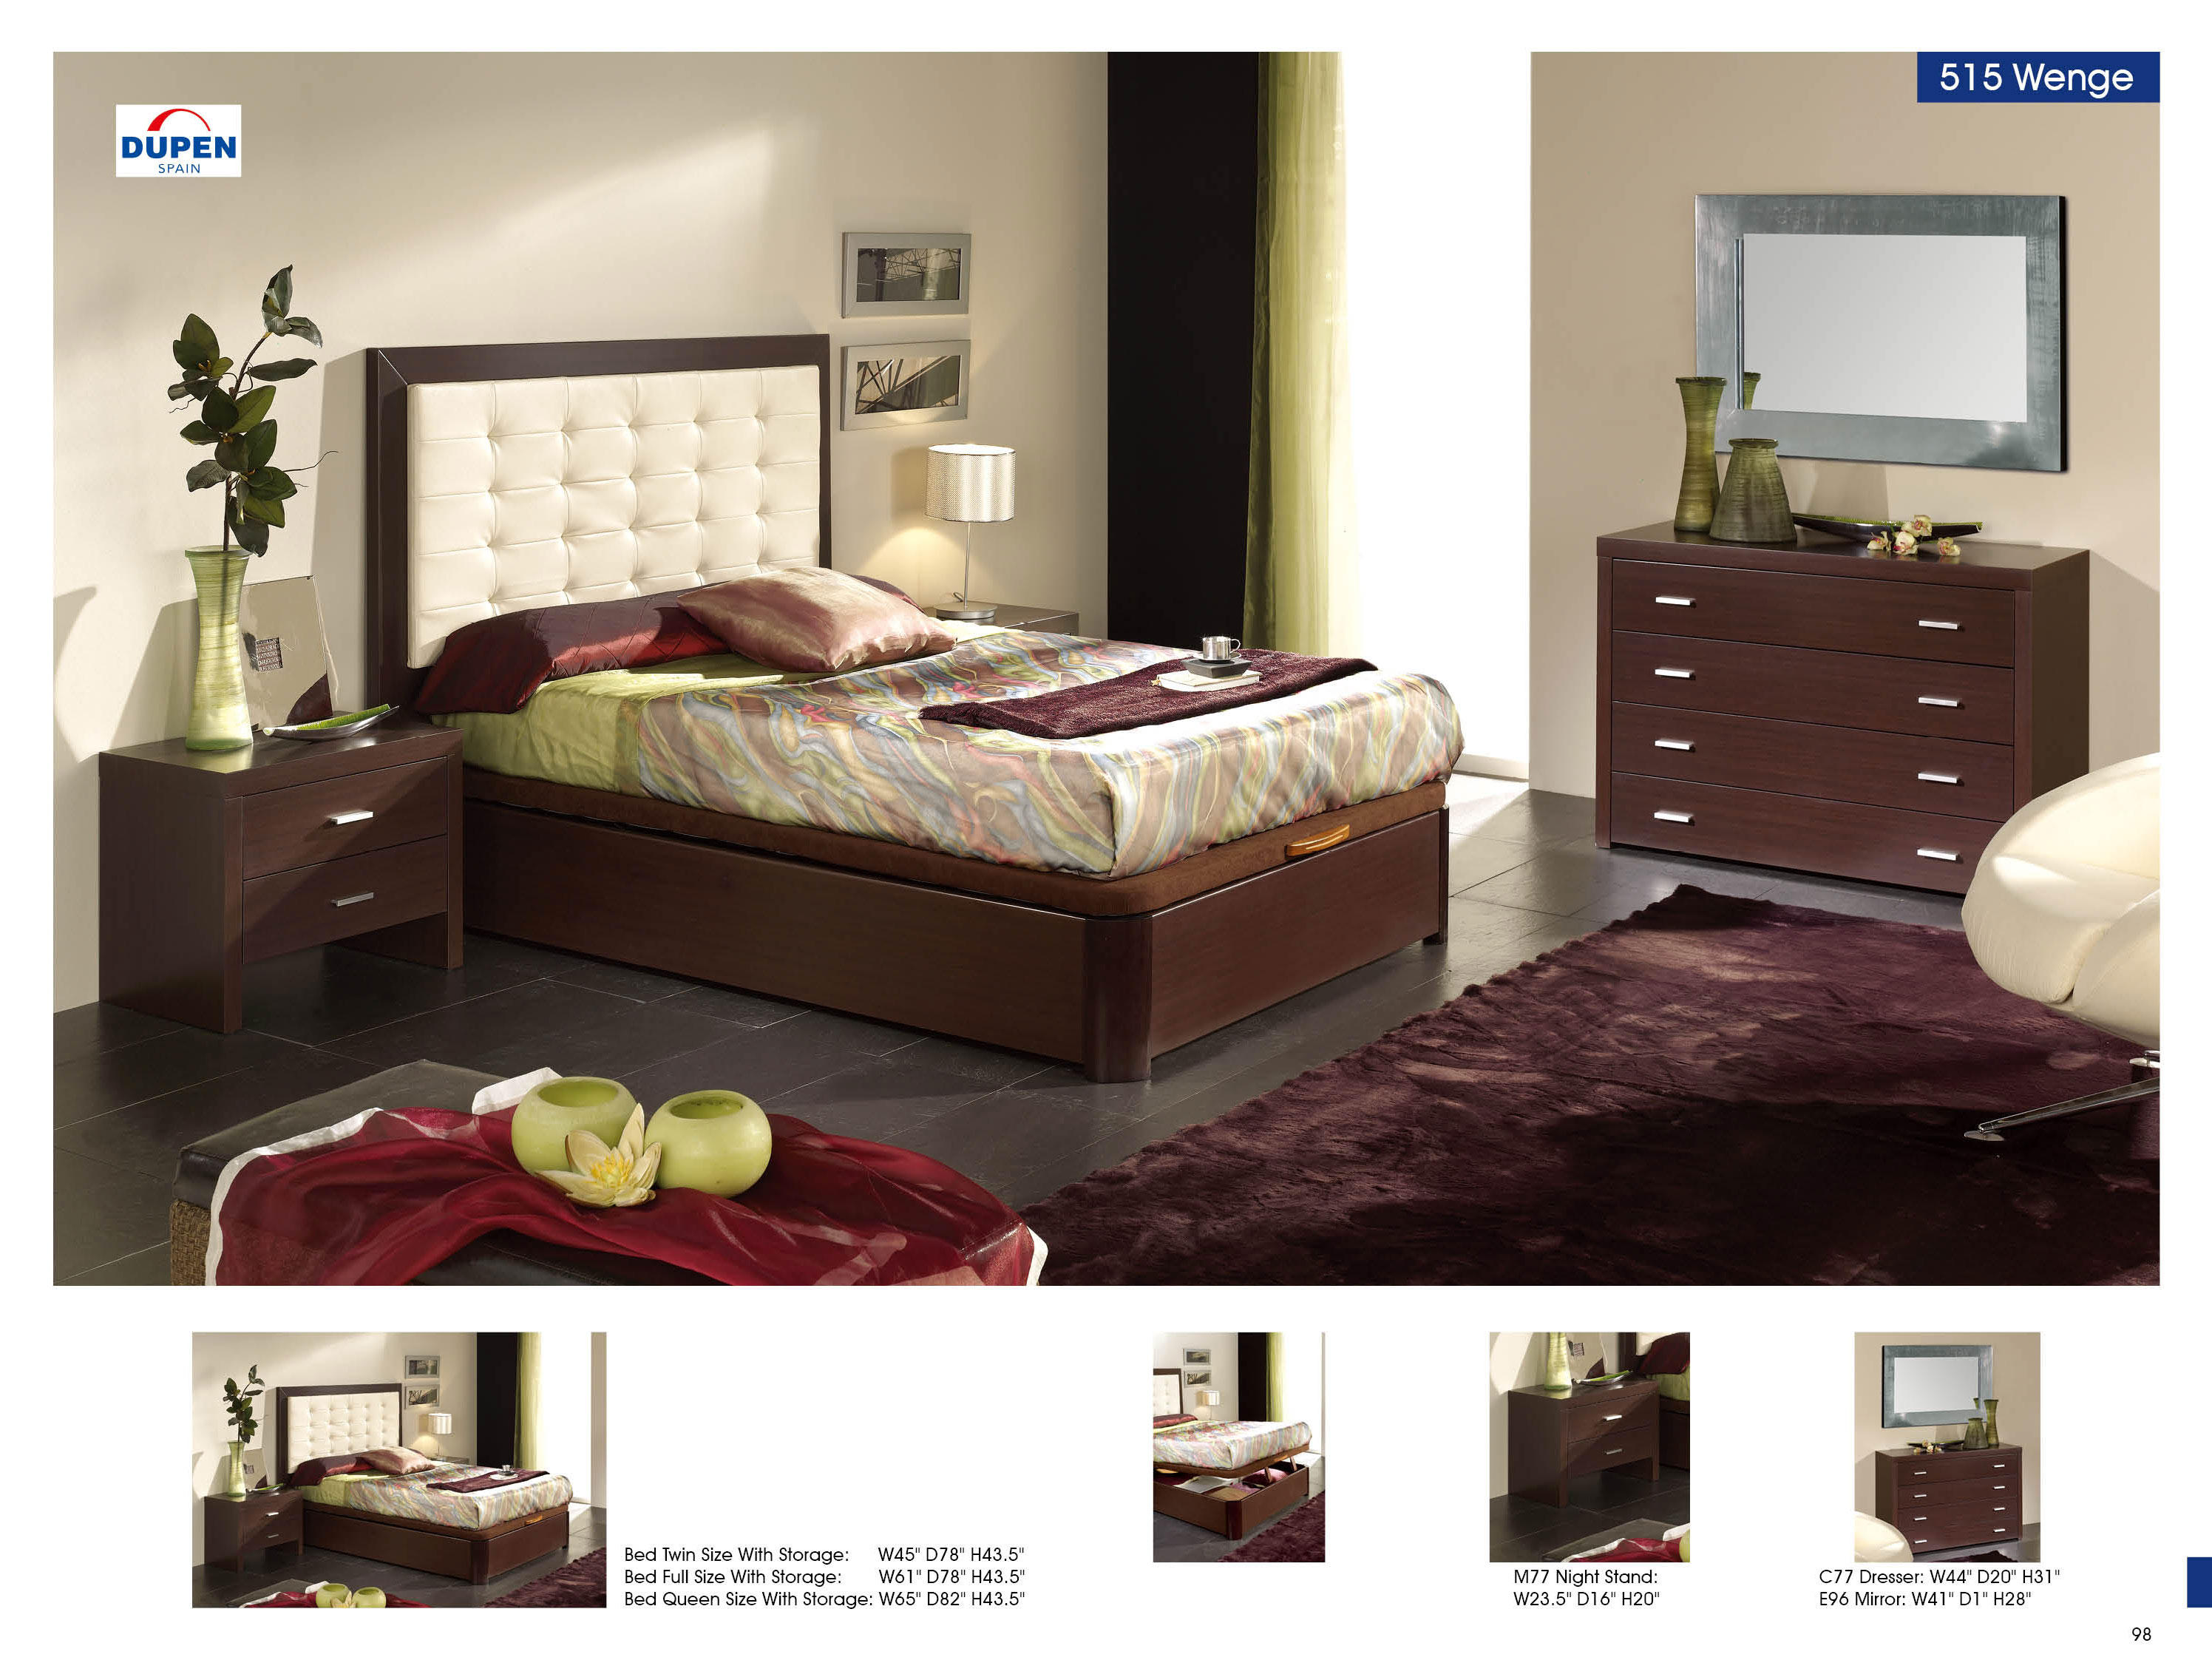 Charmant Bedroom Furniture Beds With Storage Alicante 515 Wenge, M77, C77, E96